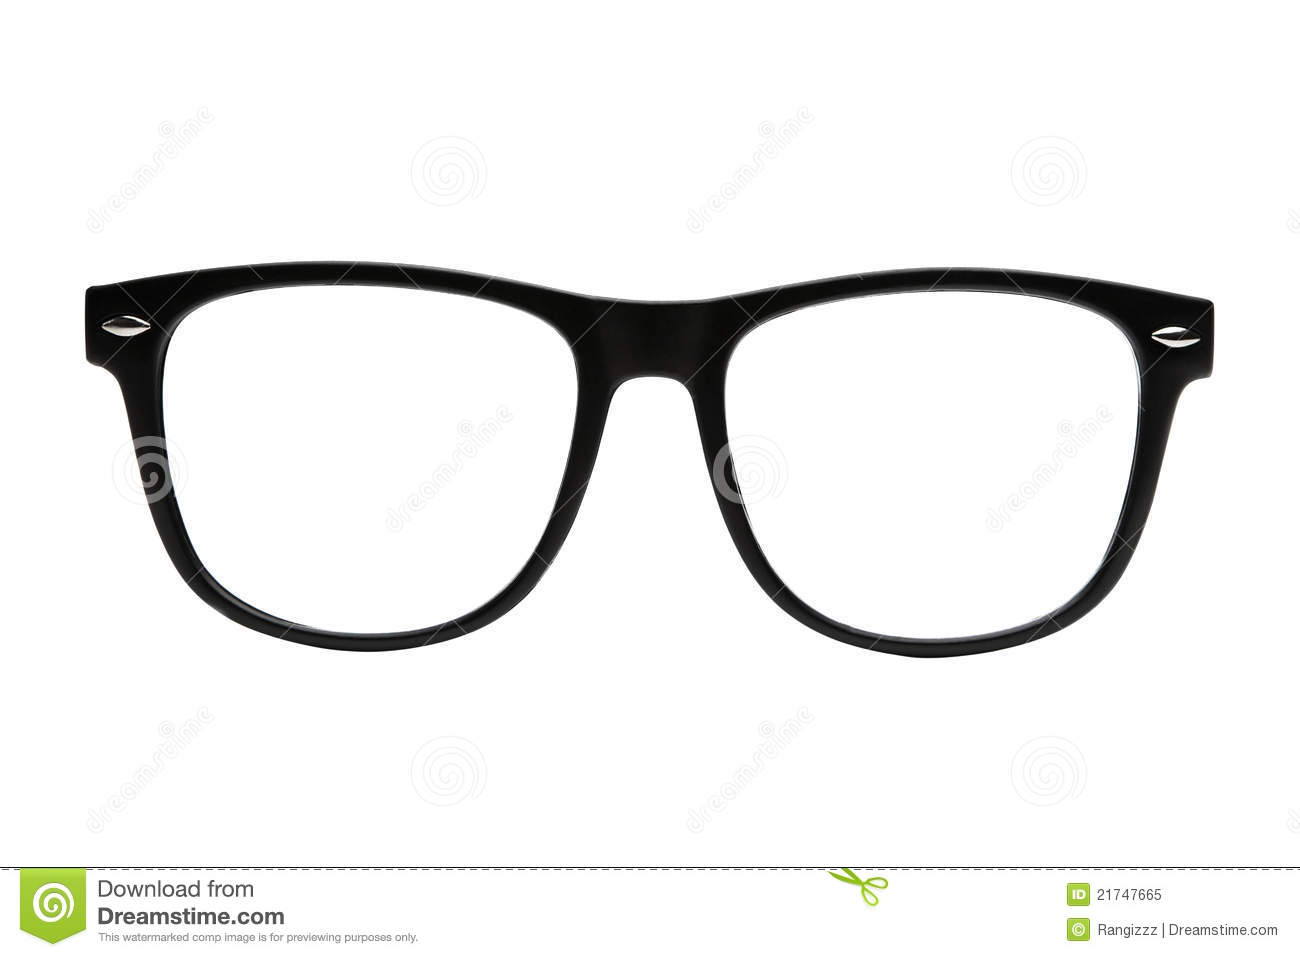 Mustache clipart spectacles frame. Glasses free download best